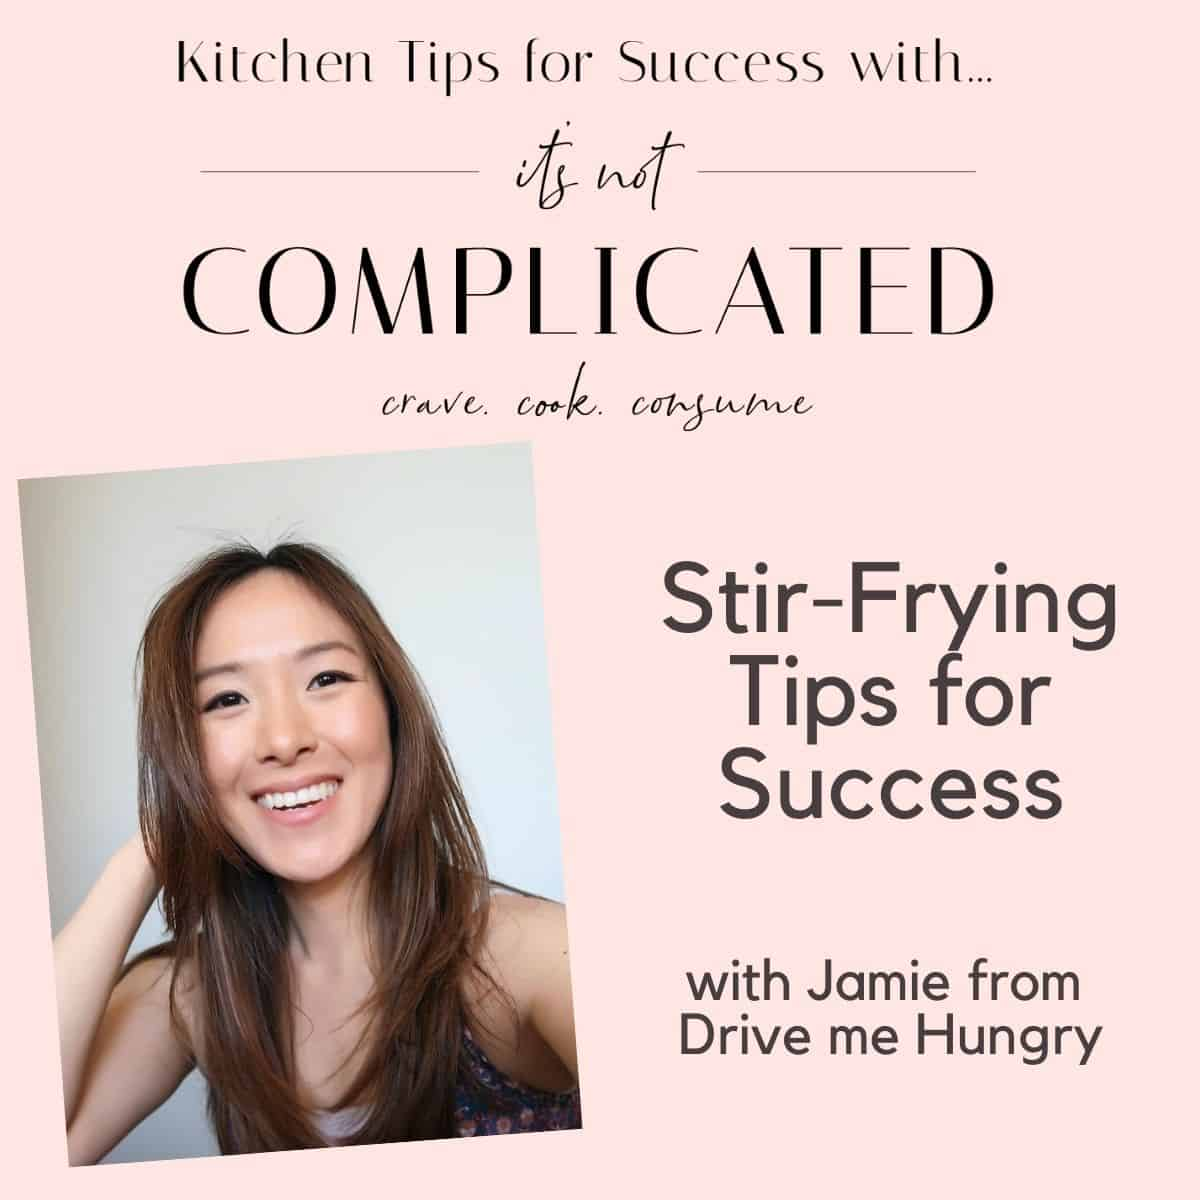 Poster of Jamie for Stir Frying Tips for Success